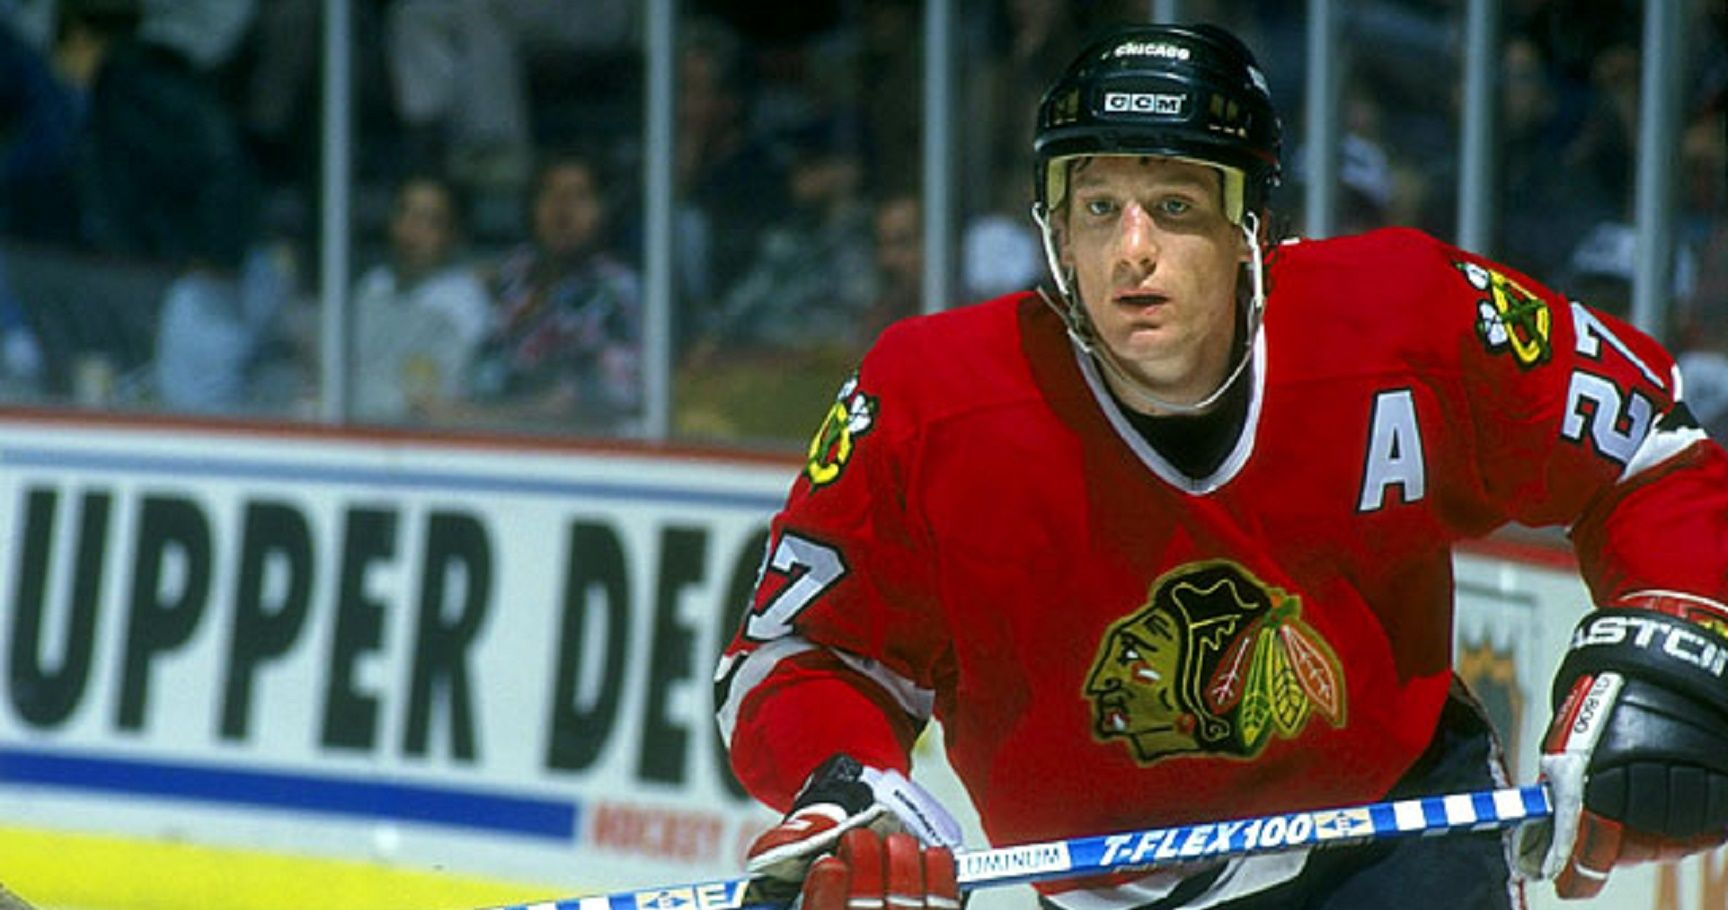 Top 10 incredible hockey players not in the hall of fame